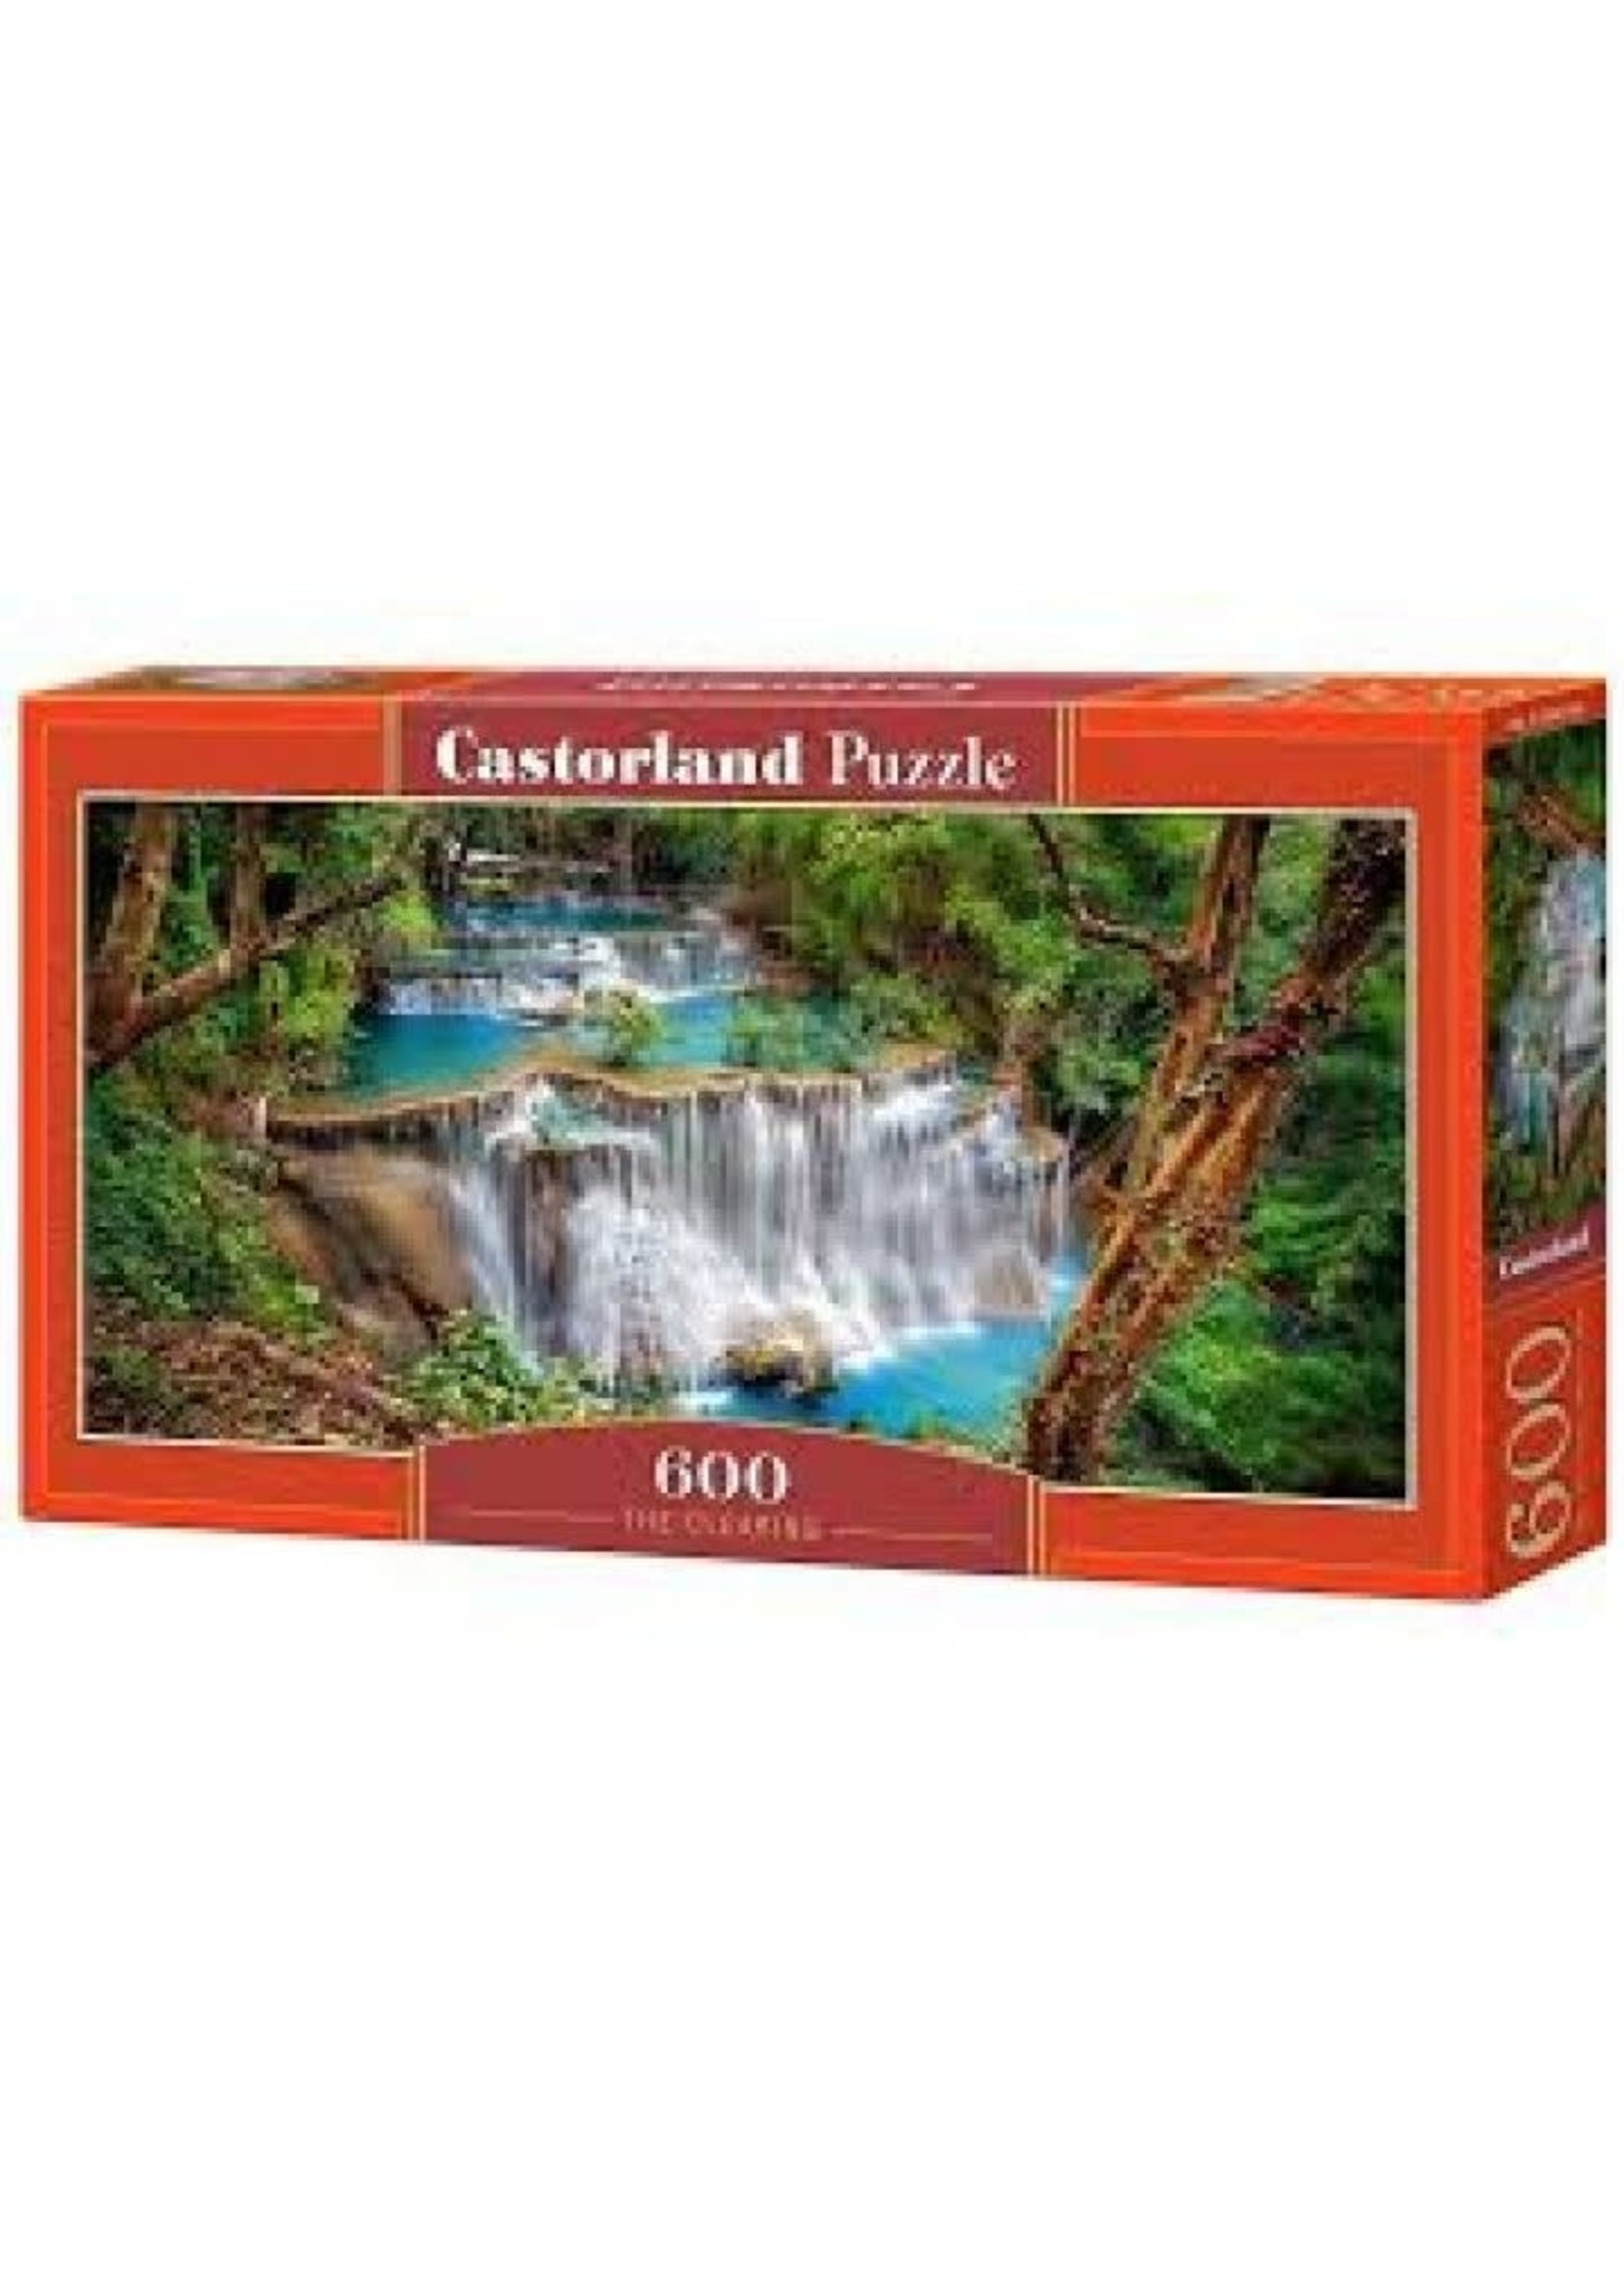 Castorland The Clearing (Pan. 600 Pcs.)